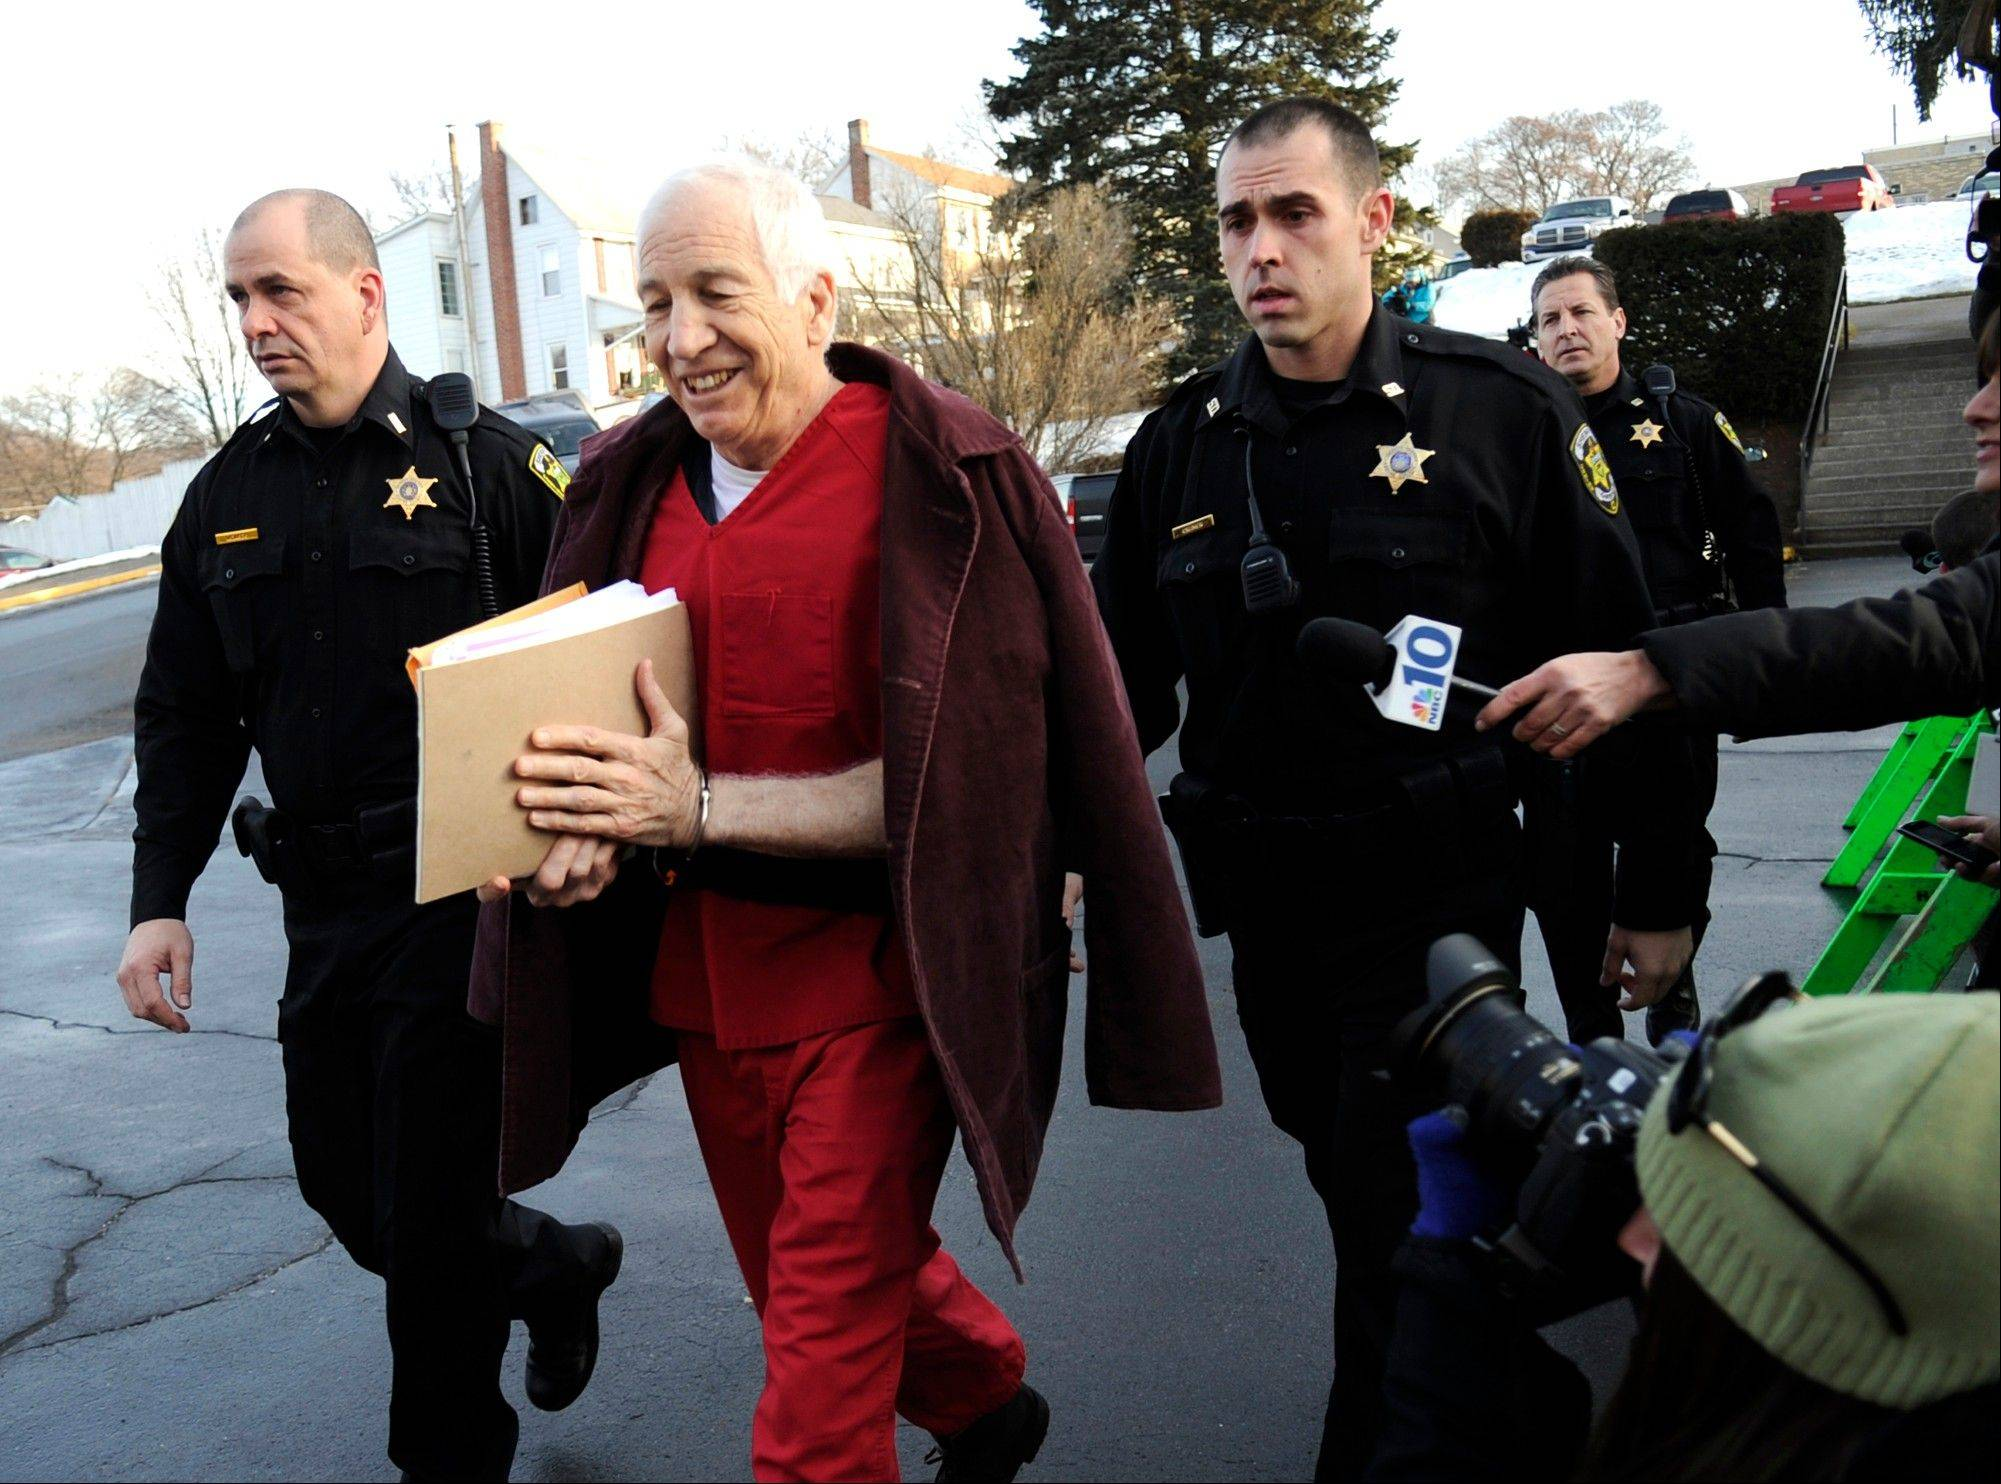 Former Penn State University assistant football coach Jerry Sandusky, center, arrives at the Centre County Courthouse for a post-sentence motion in Bellefonte, Pa., Thursday, Jan. 10, 2013. The hearing is expected to delve into the legal challenges filed by Sandusky's lawyers, including their claim that a deluge of prosecution materials swamped the defense. Sandusky is serving a 30- to 60-year prison sentence after being convicted in June of 45 counts of child sexual abuse.